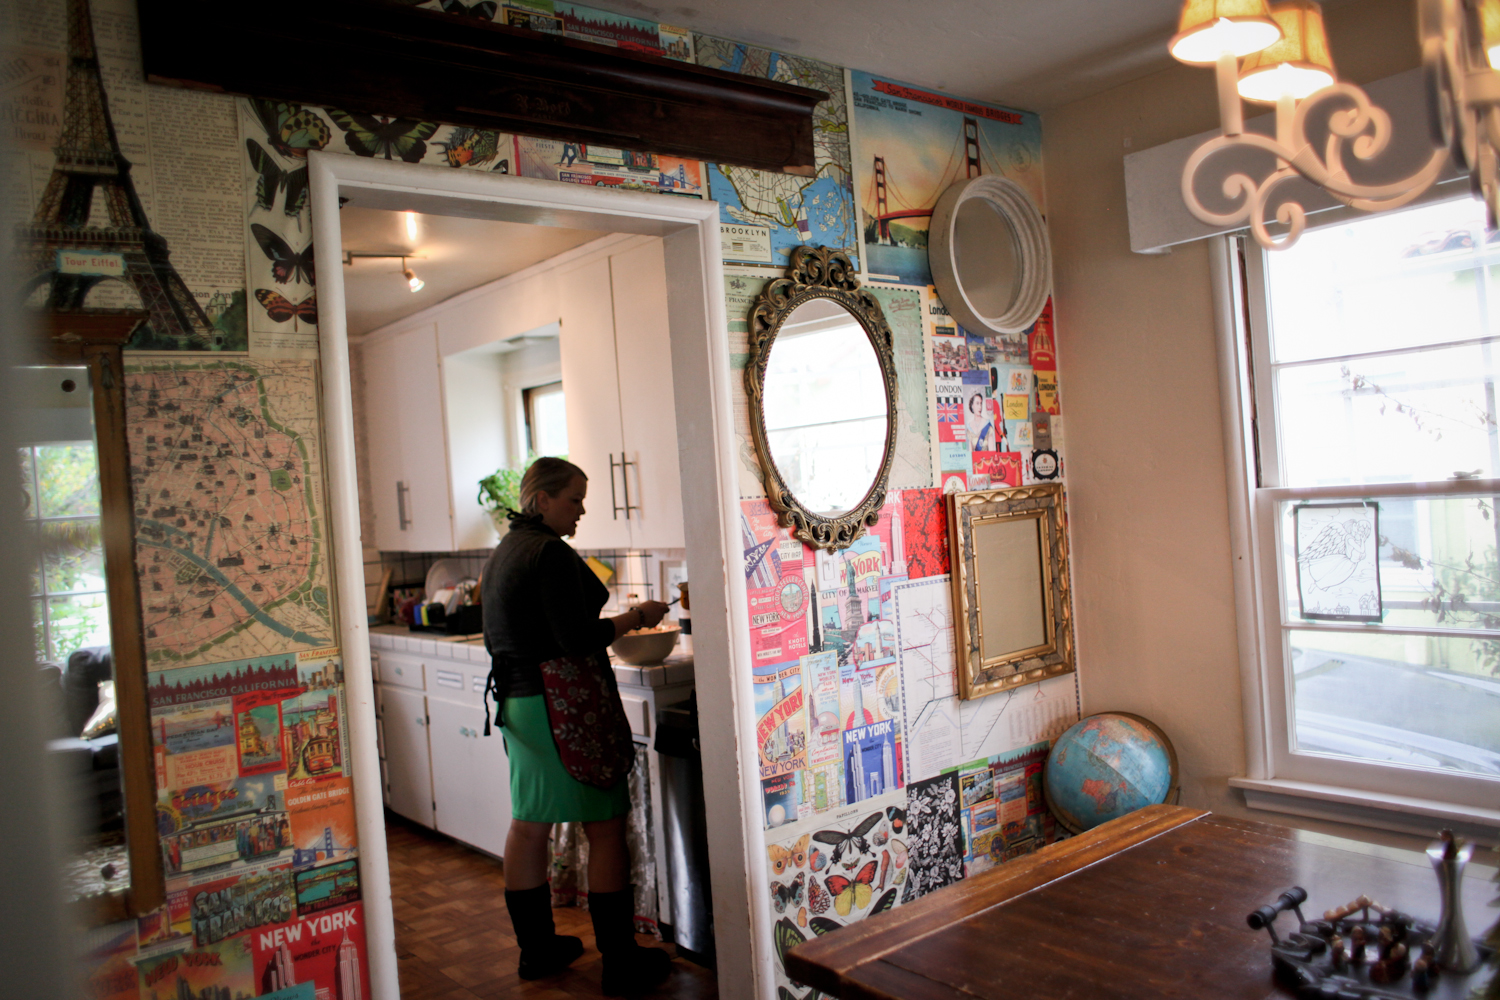 Jessica deco-paged this wall and did many other crafty things to decorate their home. It pretty much blows Pinterest away.